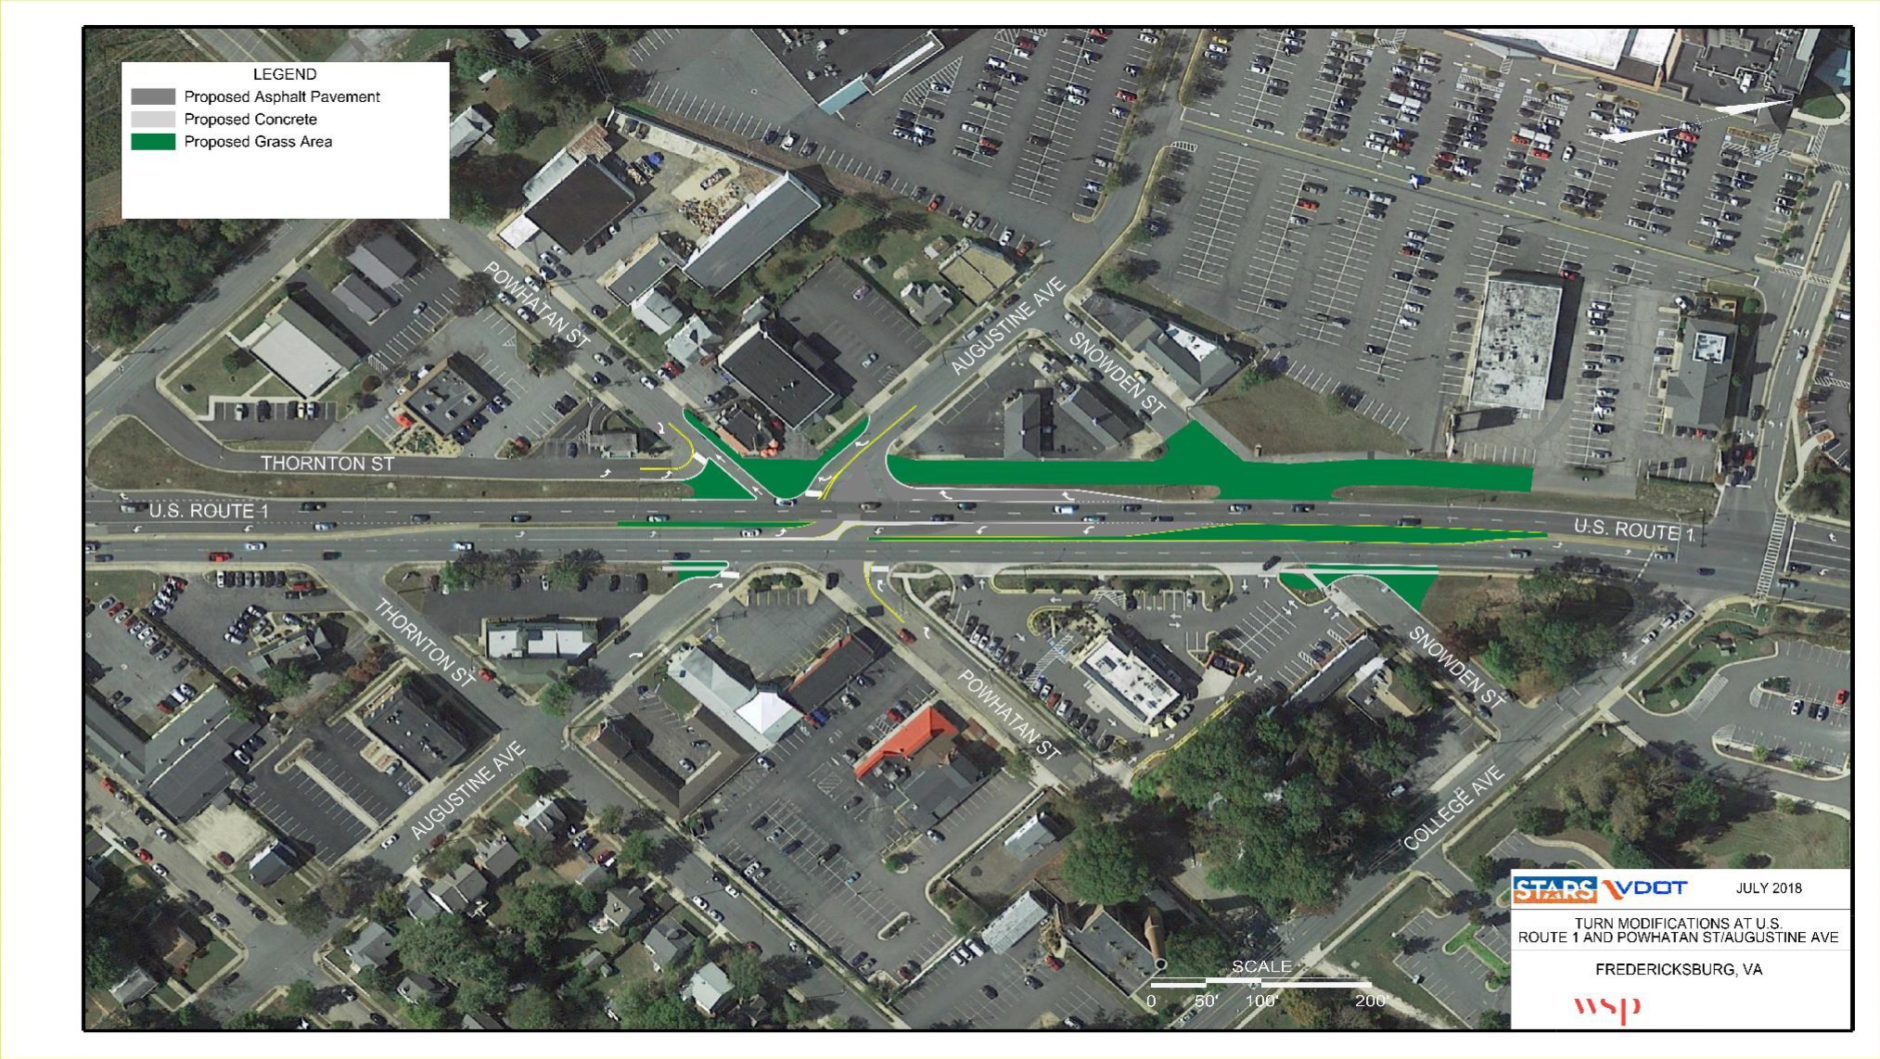 Changes to turn lanes aim to alleviate traffic and reduce the number of collisions on Route 1 through Fredericksburg. (Courtesy of VDOT)